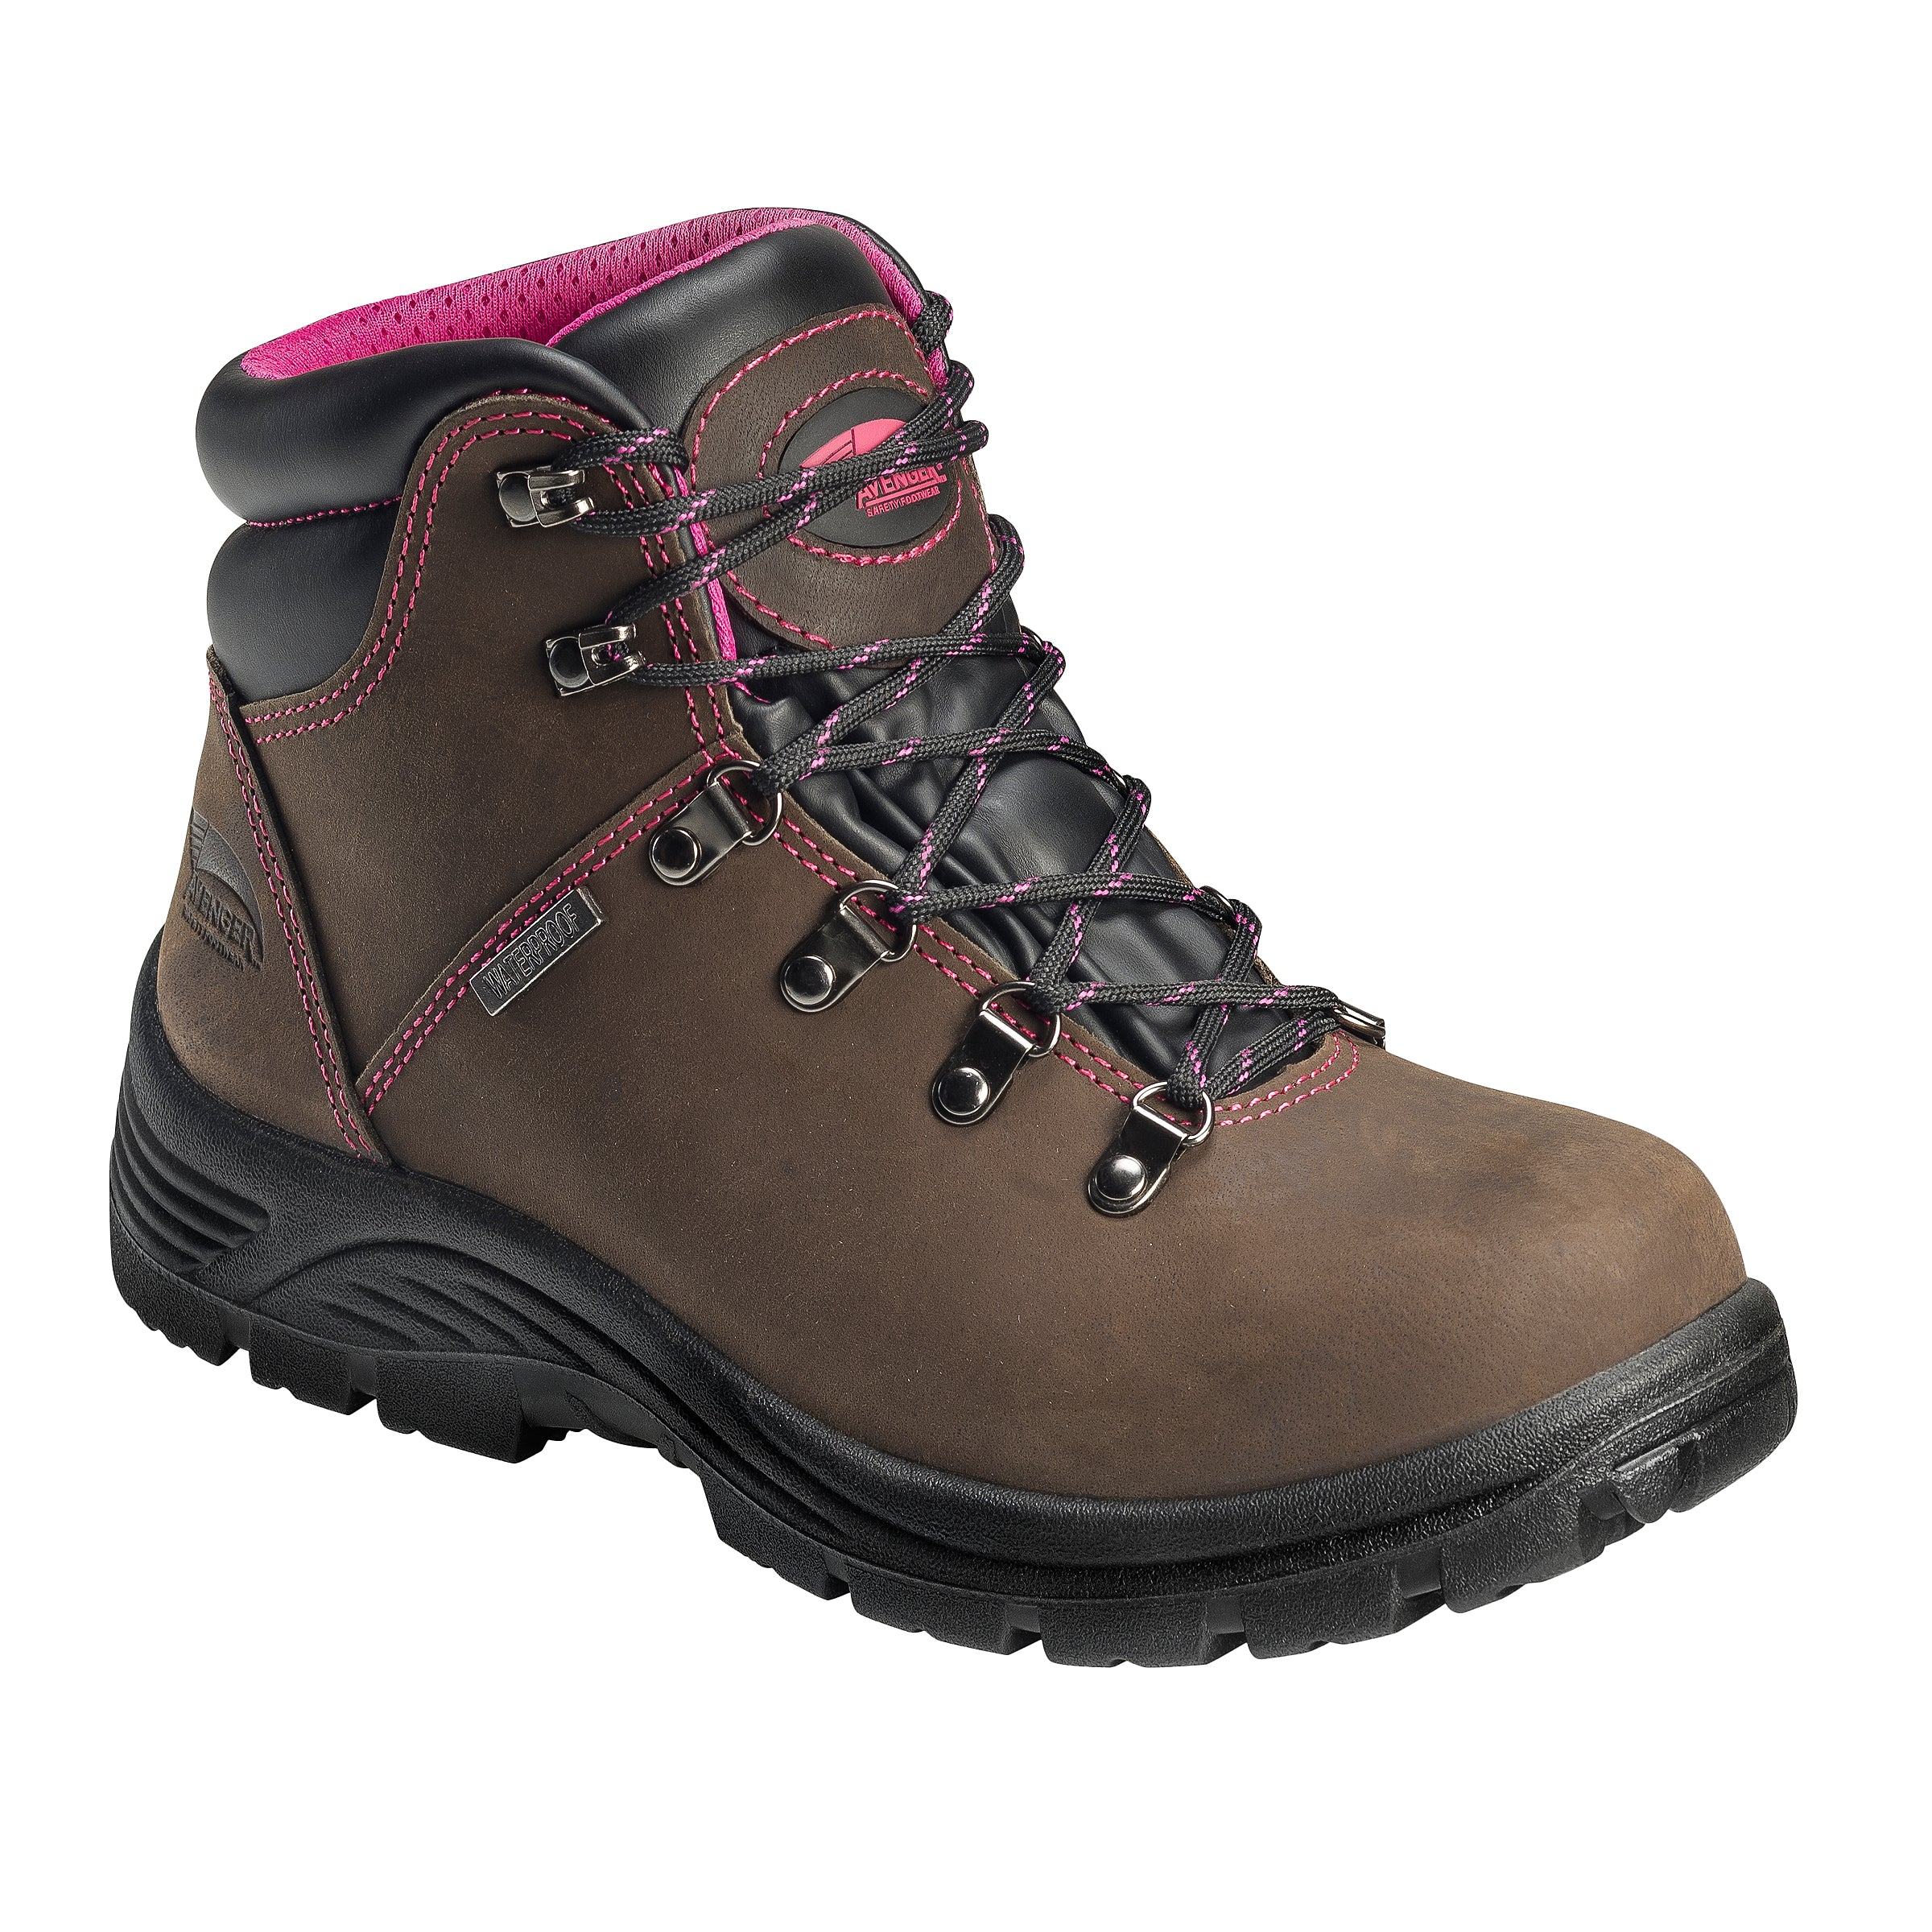 Hiker Steel Toe EH Waterproof Boot- Brown / Bright Pink